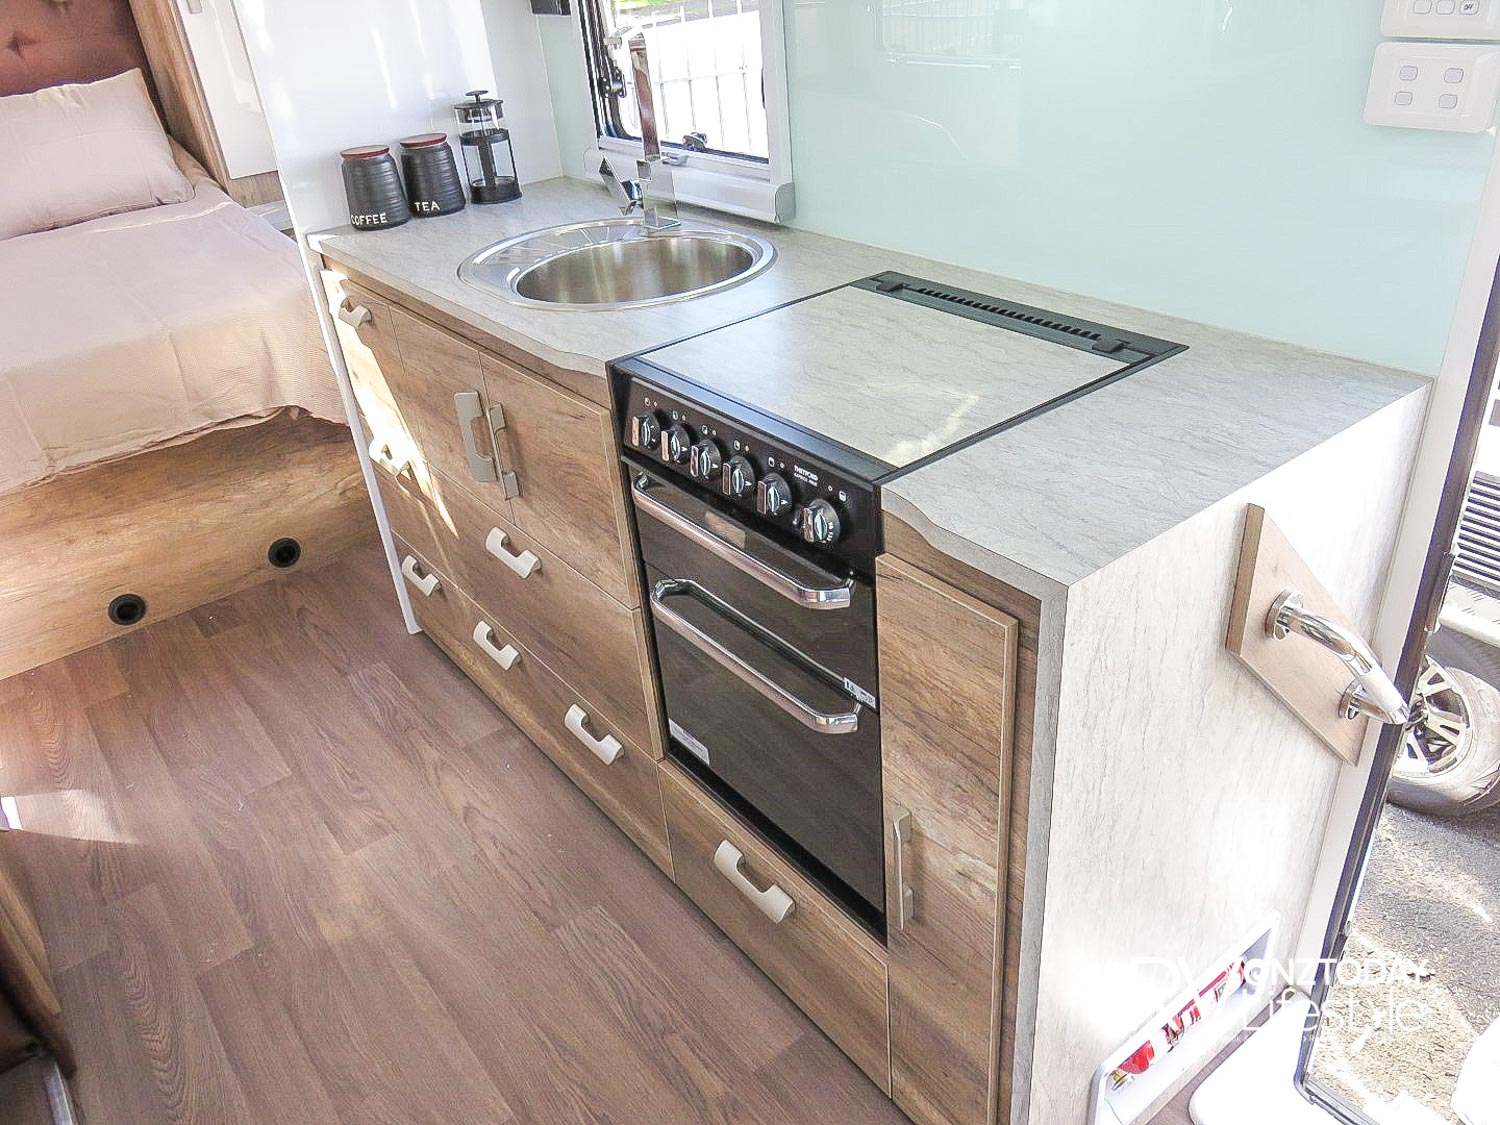 Decent kitchen bench size, lots of under bench storage, pull-out pantry, drawers and cupboards. Round stainless-steel sink with small drainer, the full oven with separate grill, three gas and one electric hob – comes with a nice cover to expand bench space